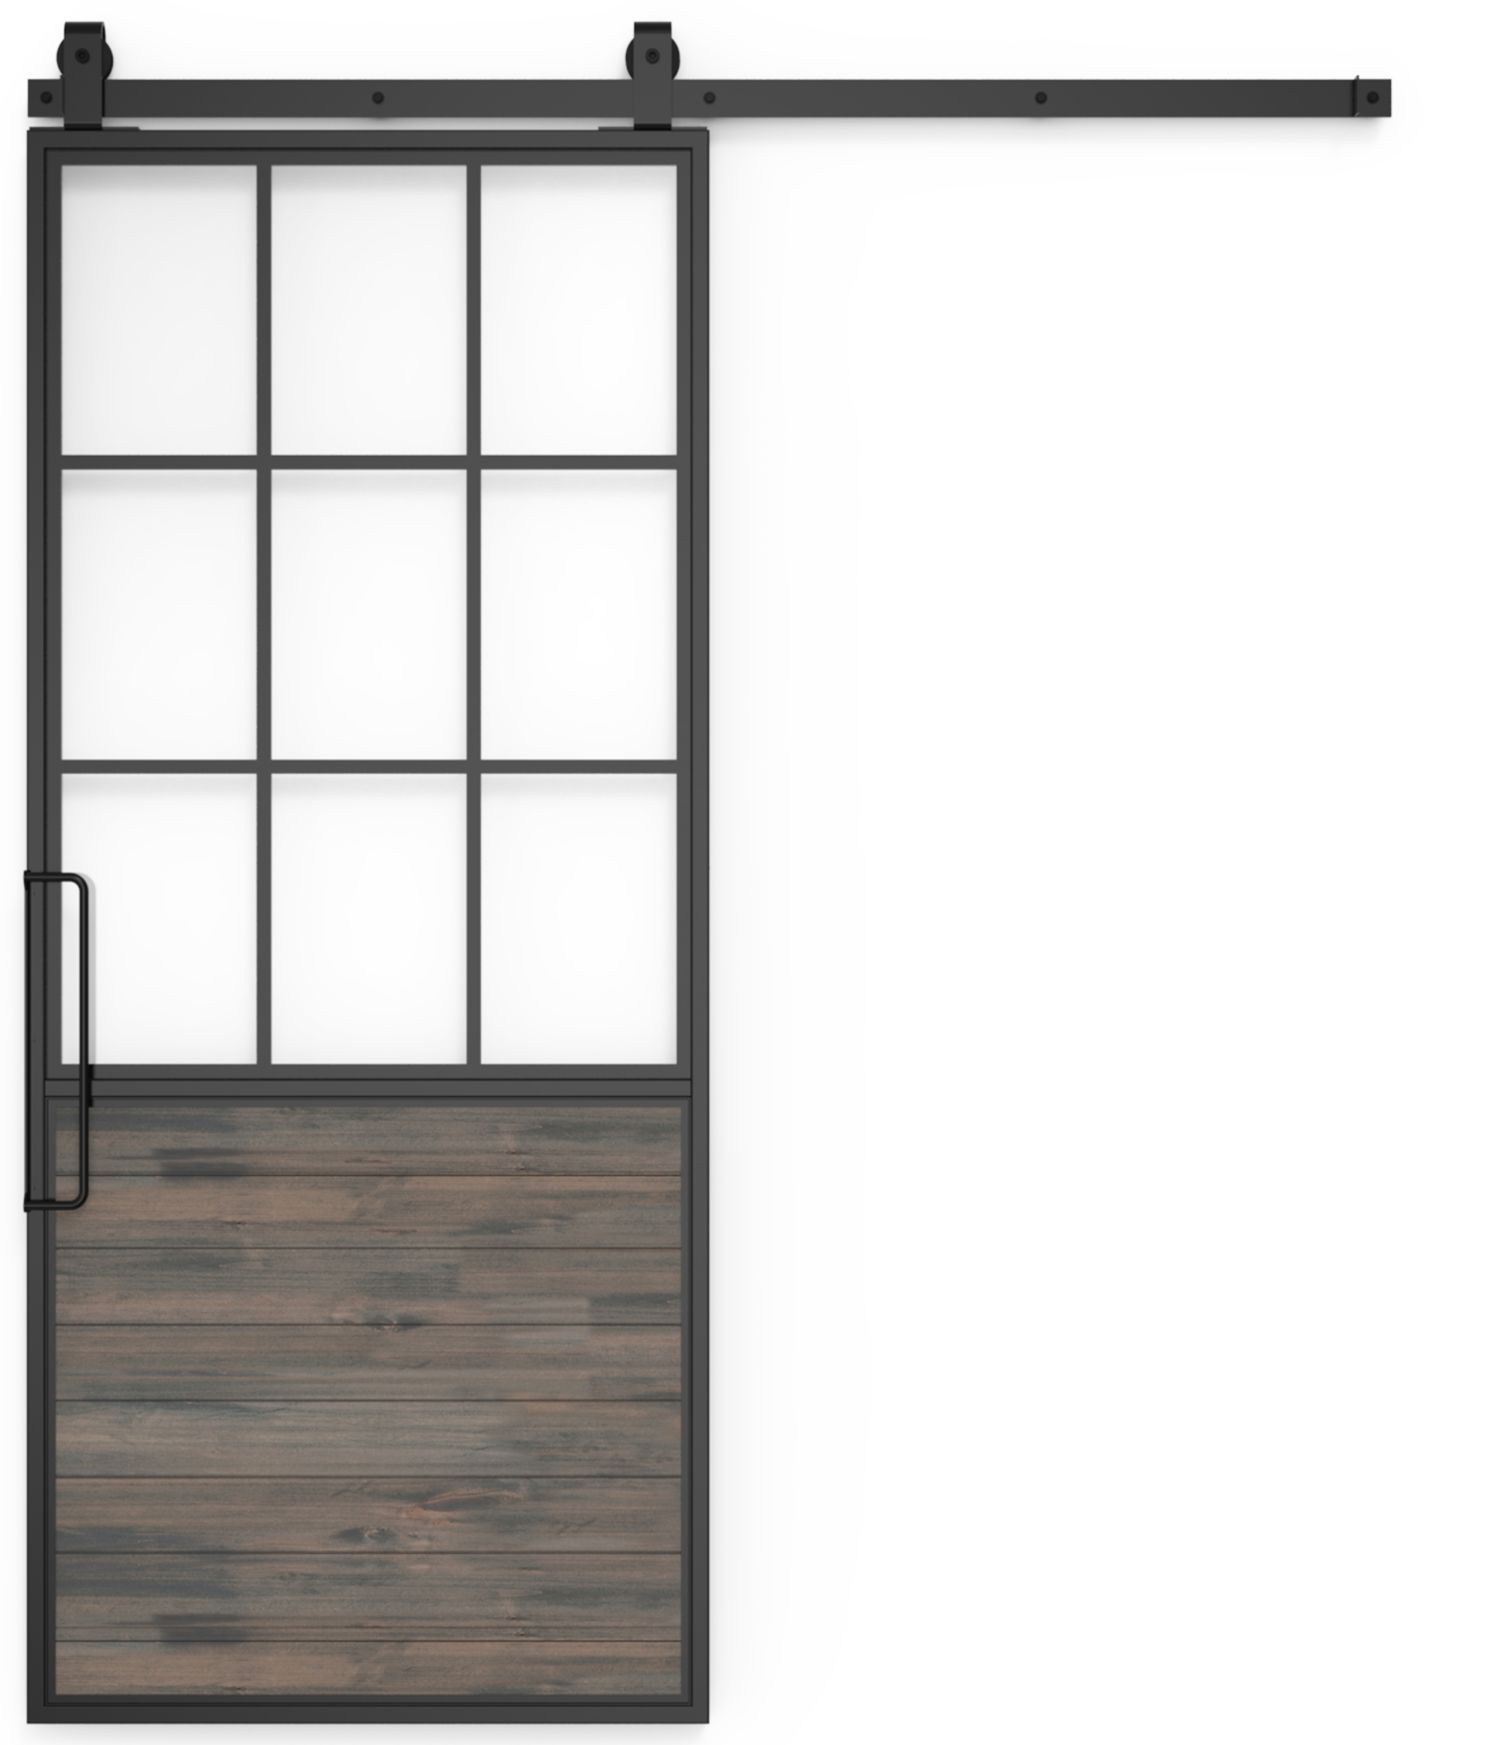 Mountain French Barn Door Half Glass Rustica Hardware Interior Barn Doors Sliding Doors Interior Interior Sliding Barn Doors